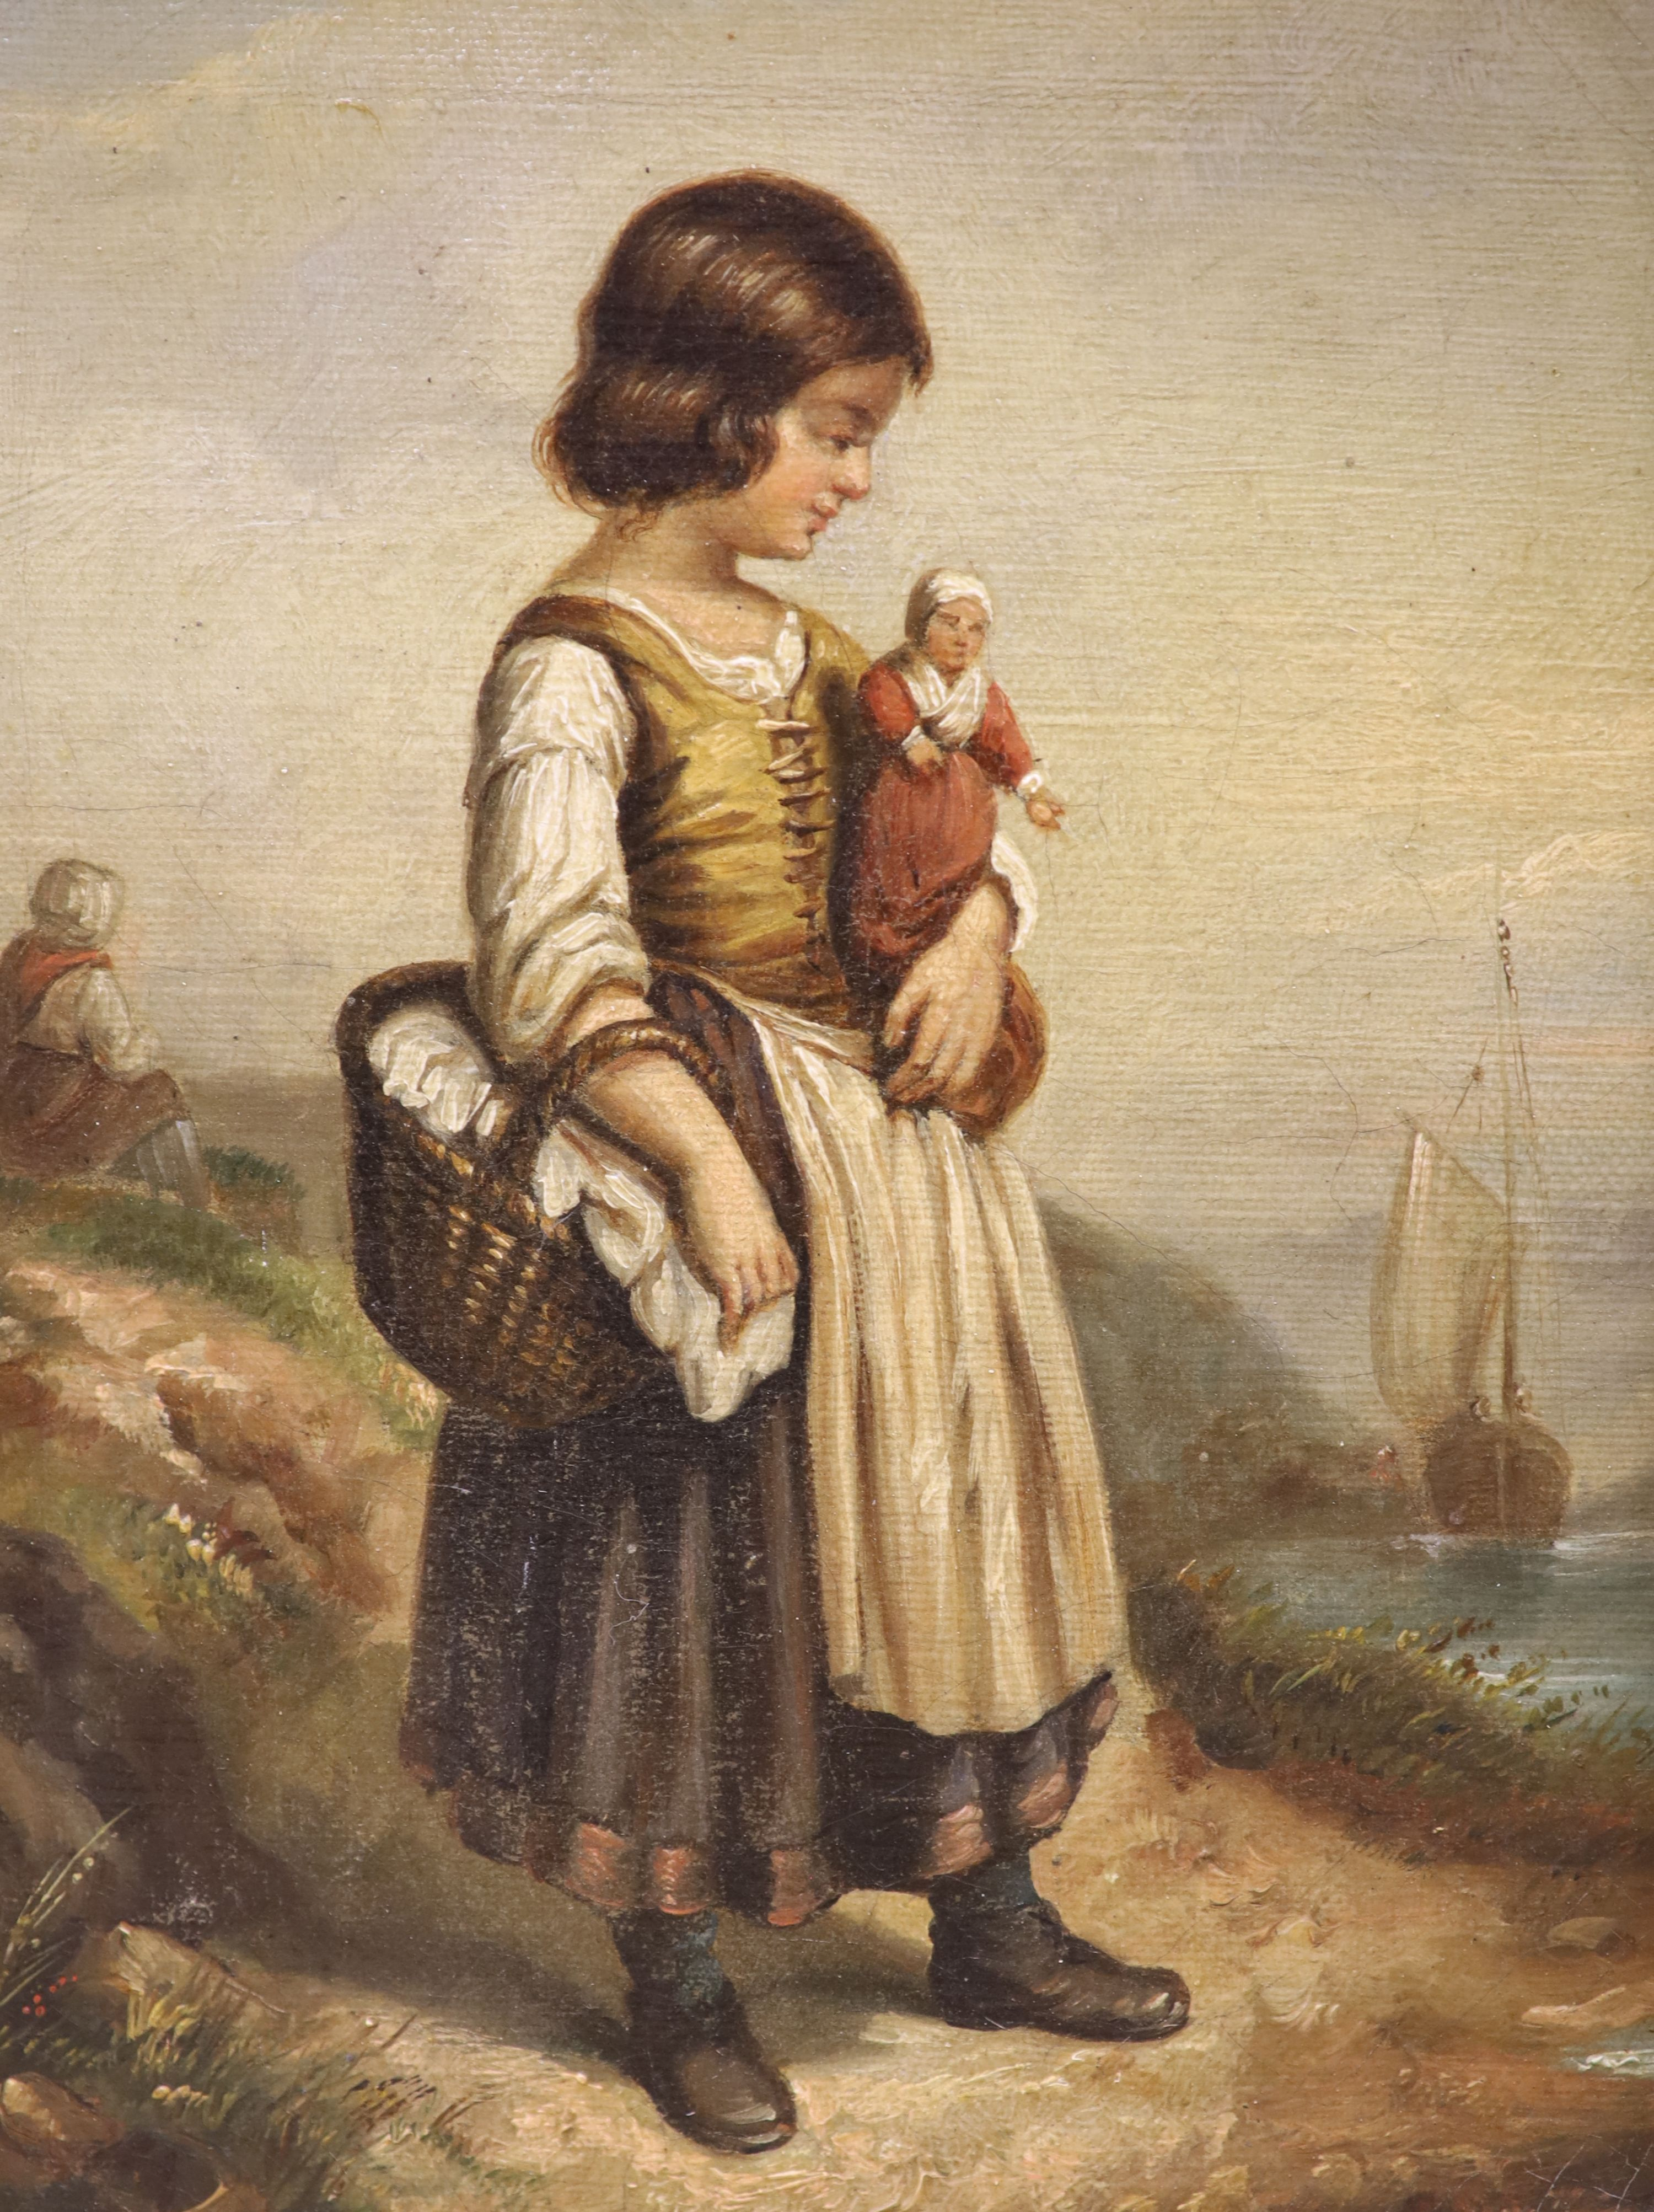 19th century French School, oil on canvas, Girl holding a doll standing upon the seashore, 21 x